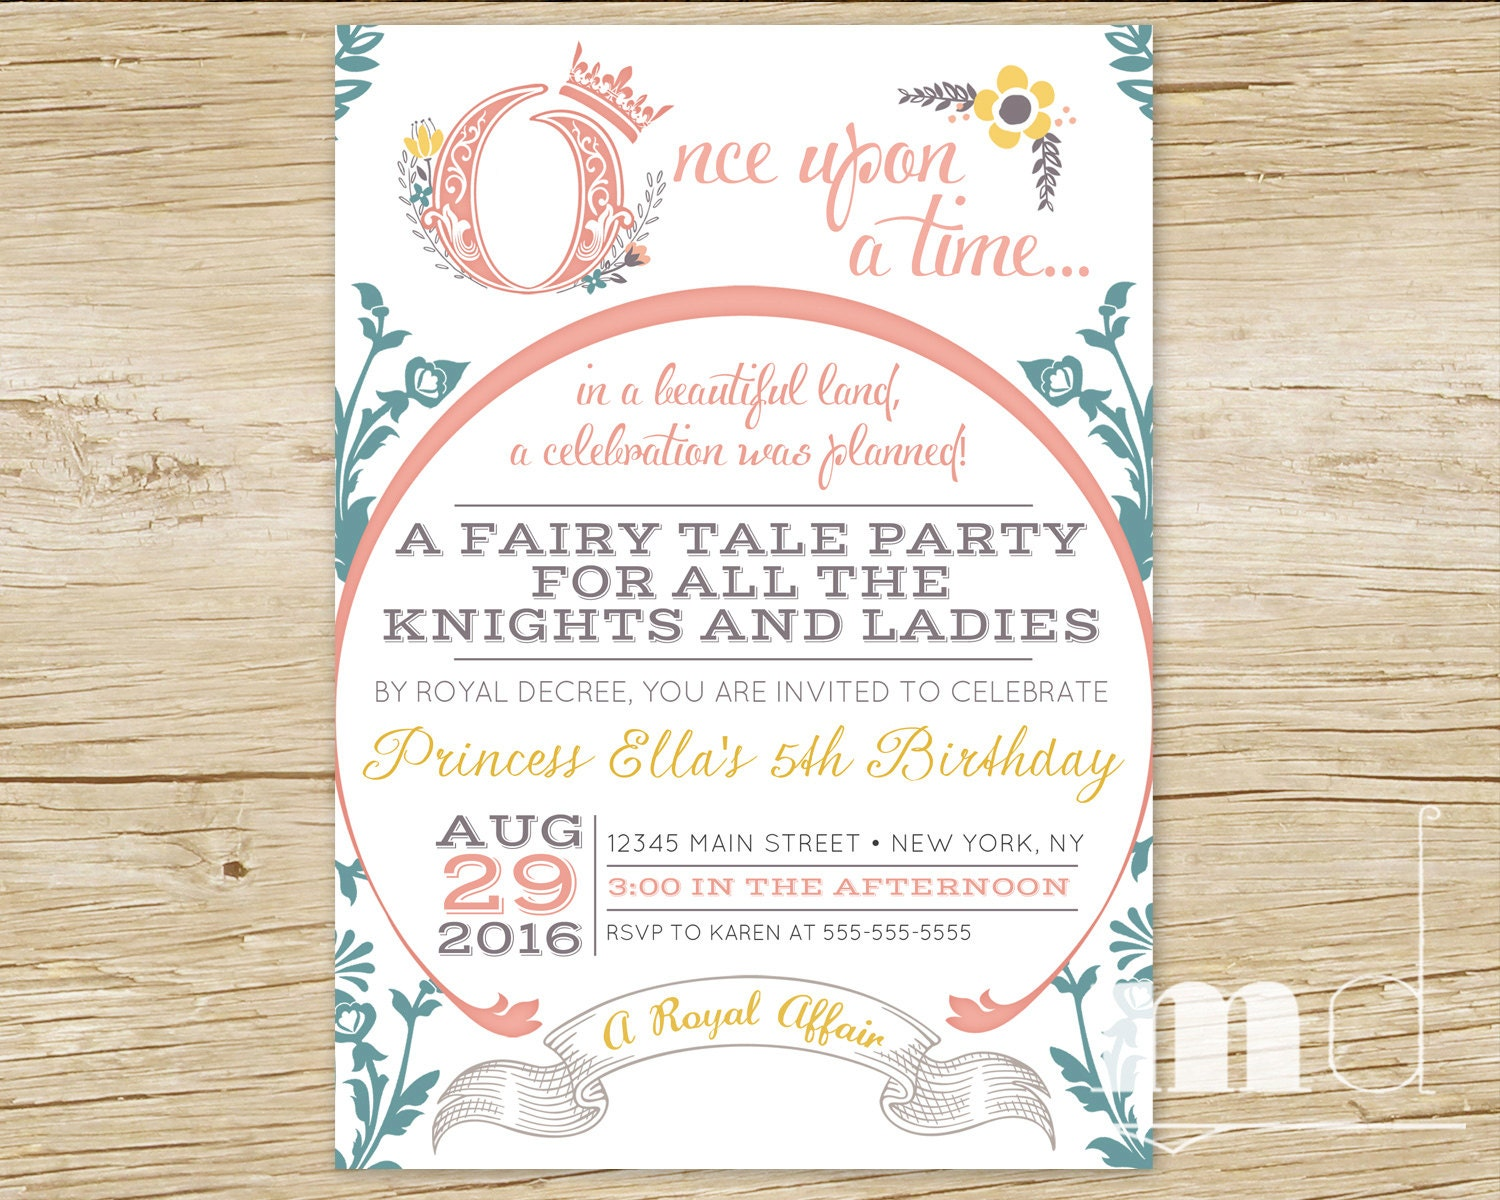 Once Upon a Time Birthday Invitations Fairytale Birthday